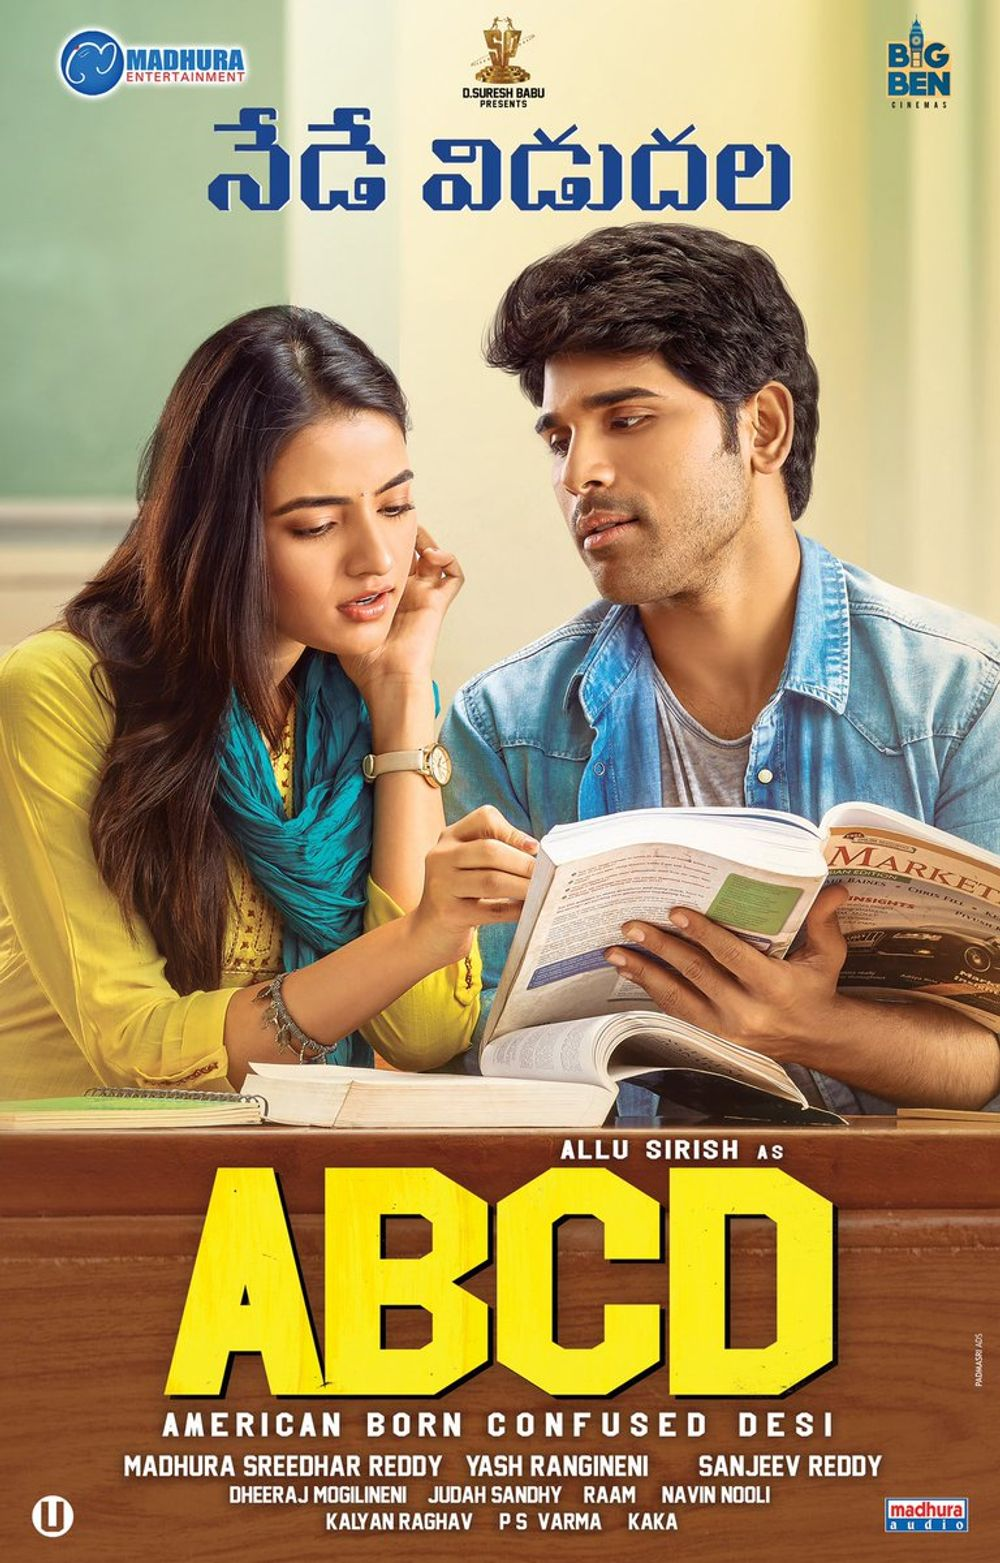 ABCD: American Born Confused Desi 2019 Hindi Dual Audio 720p UNCUT HDRip ESubs 1.5GB Download